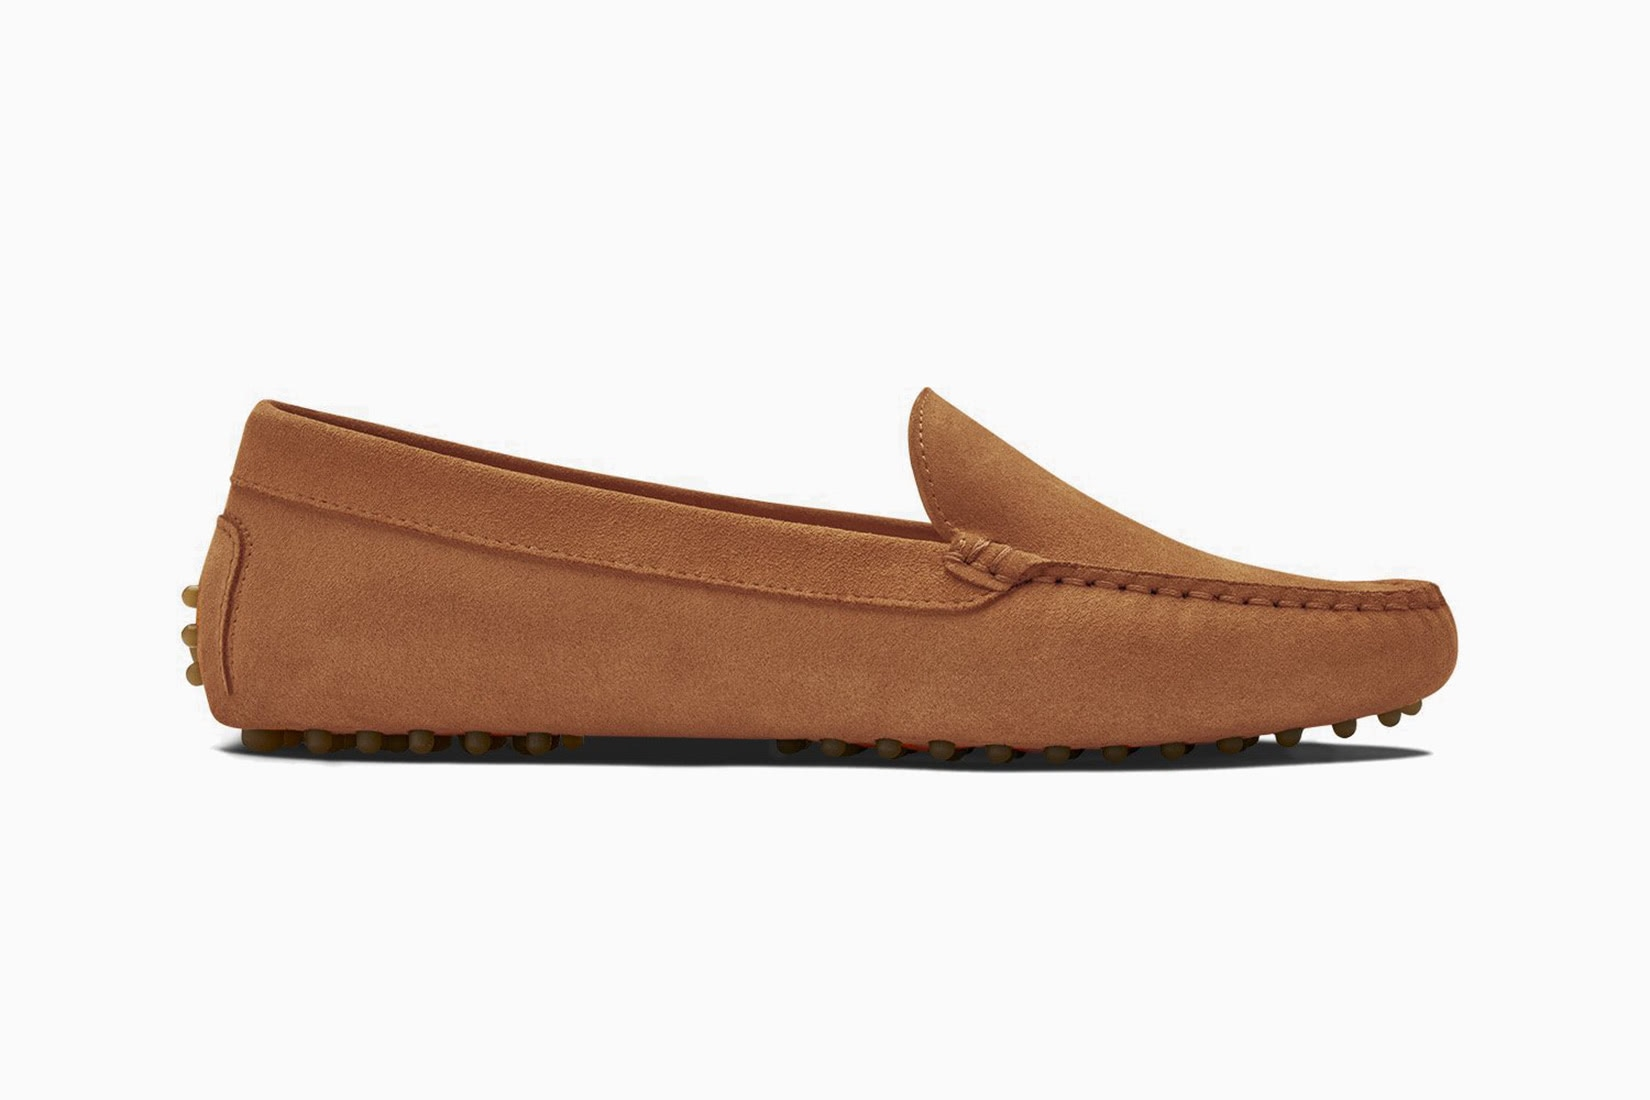 best women walking shoes oliver cabell monti flats - Luxe Digital